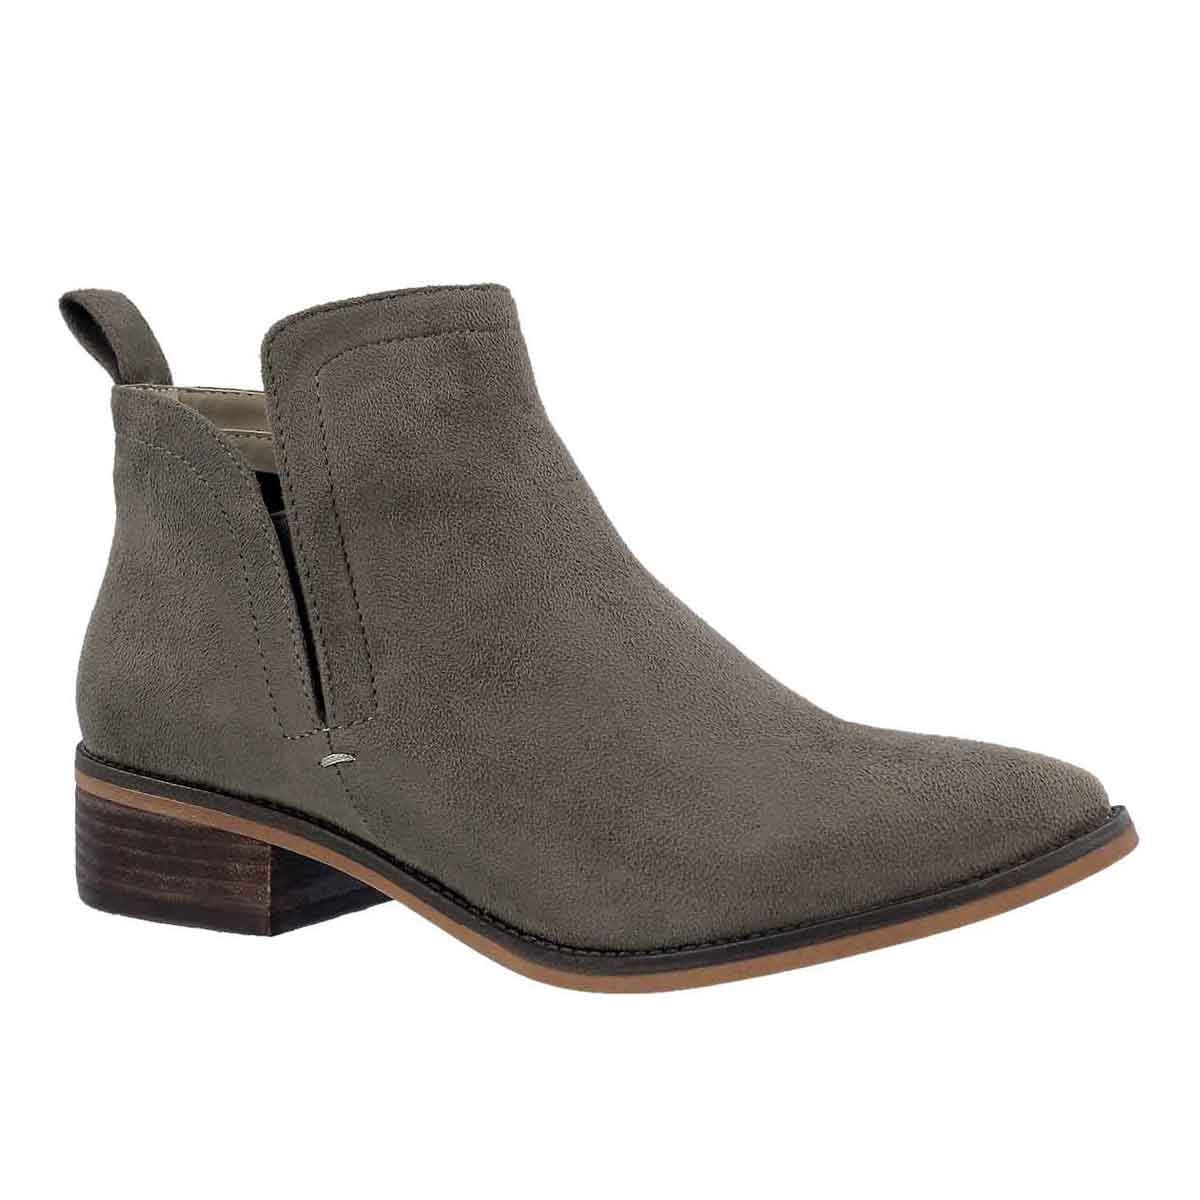 Women's FLUTTER taupe ankle boots